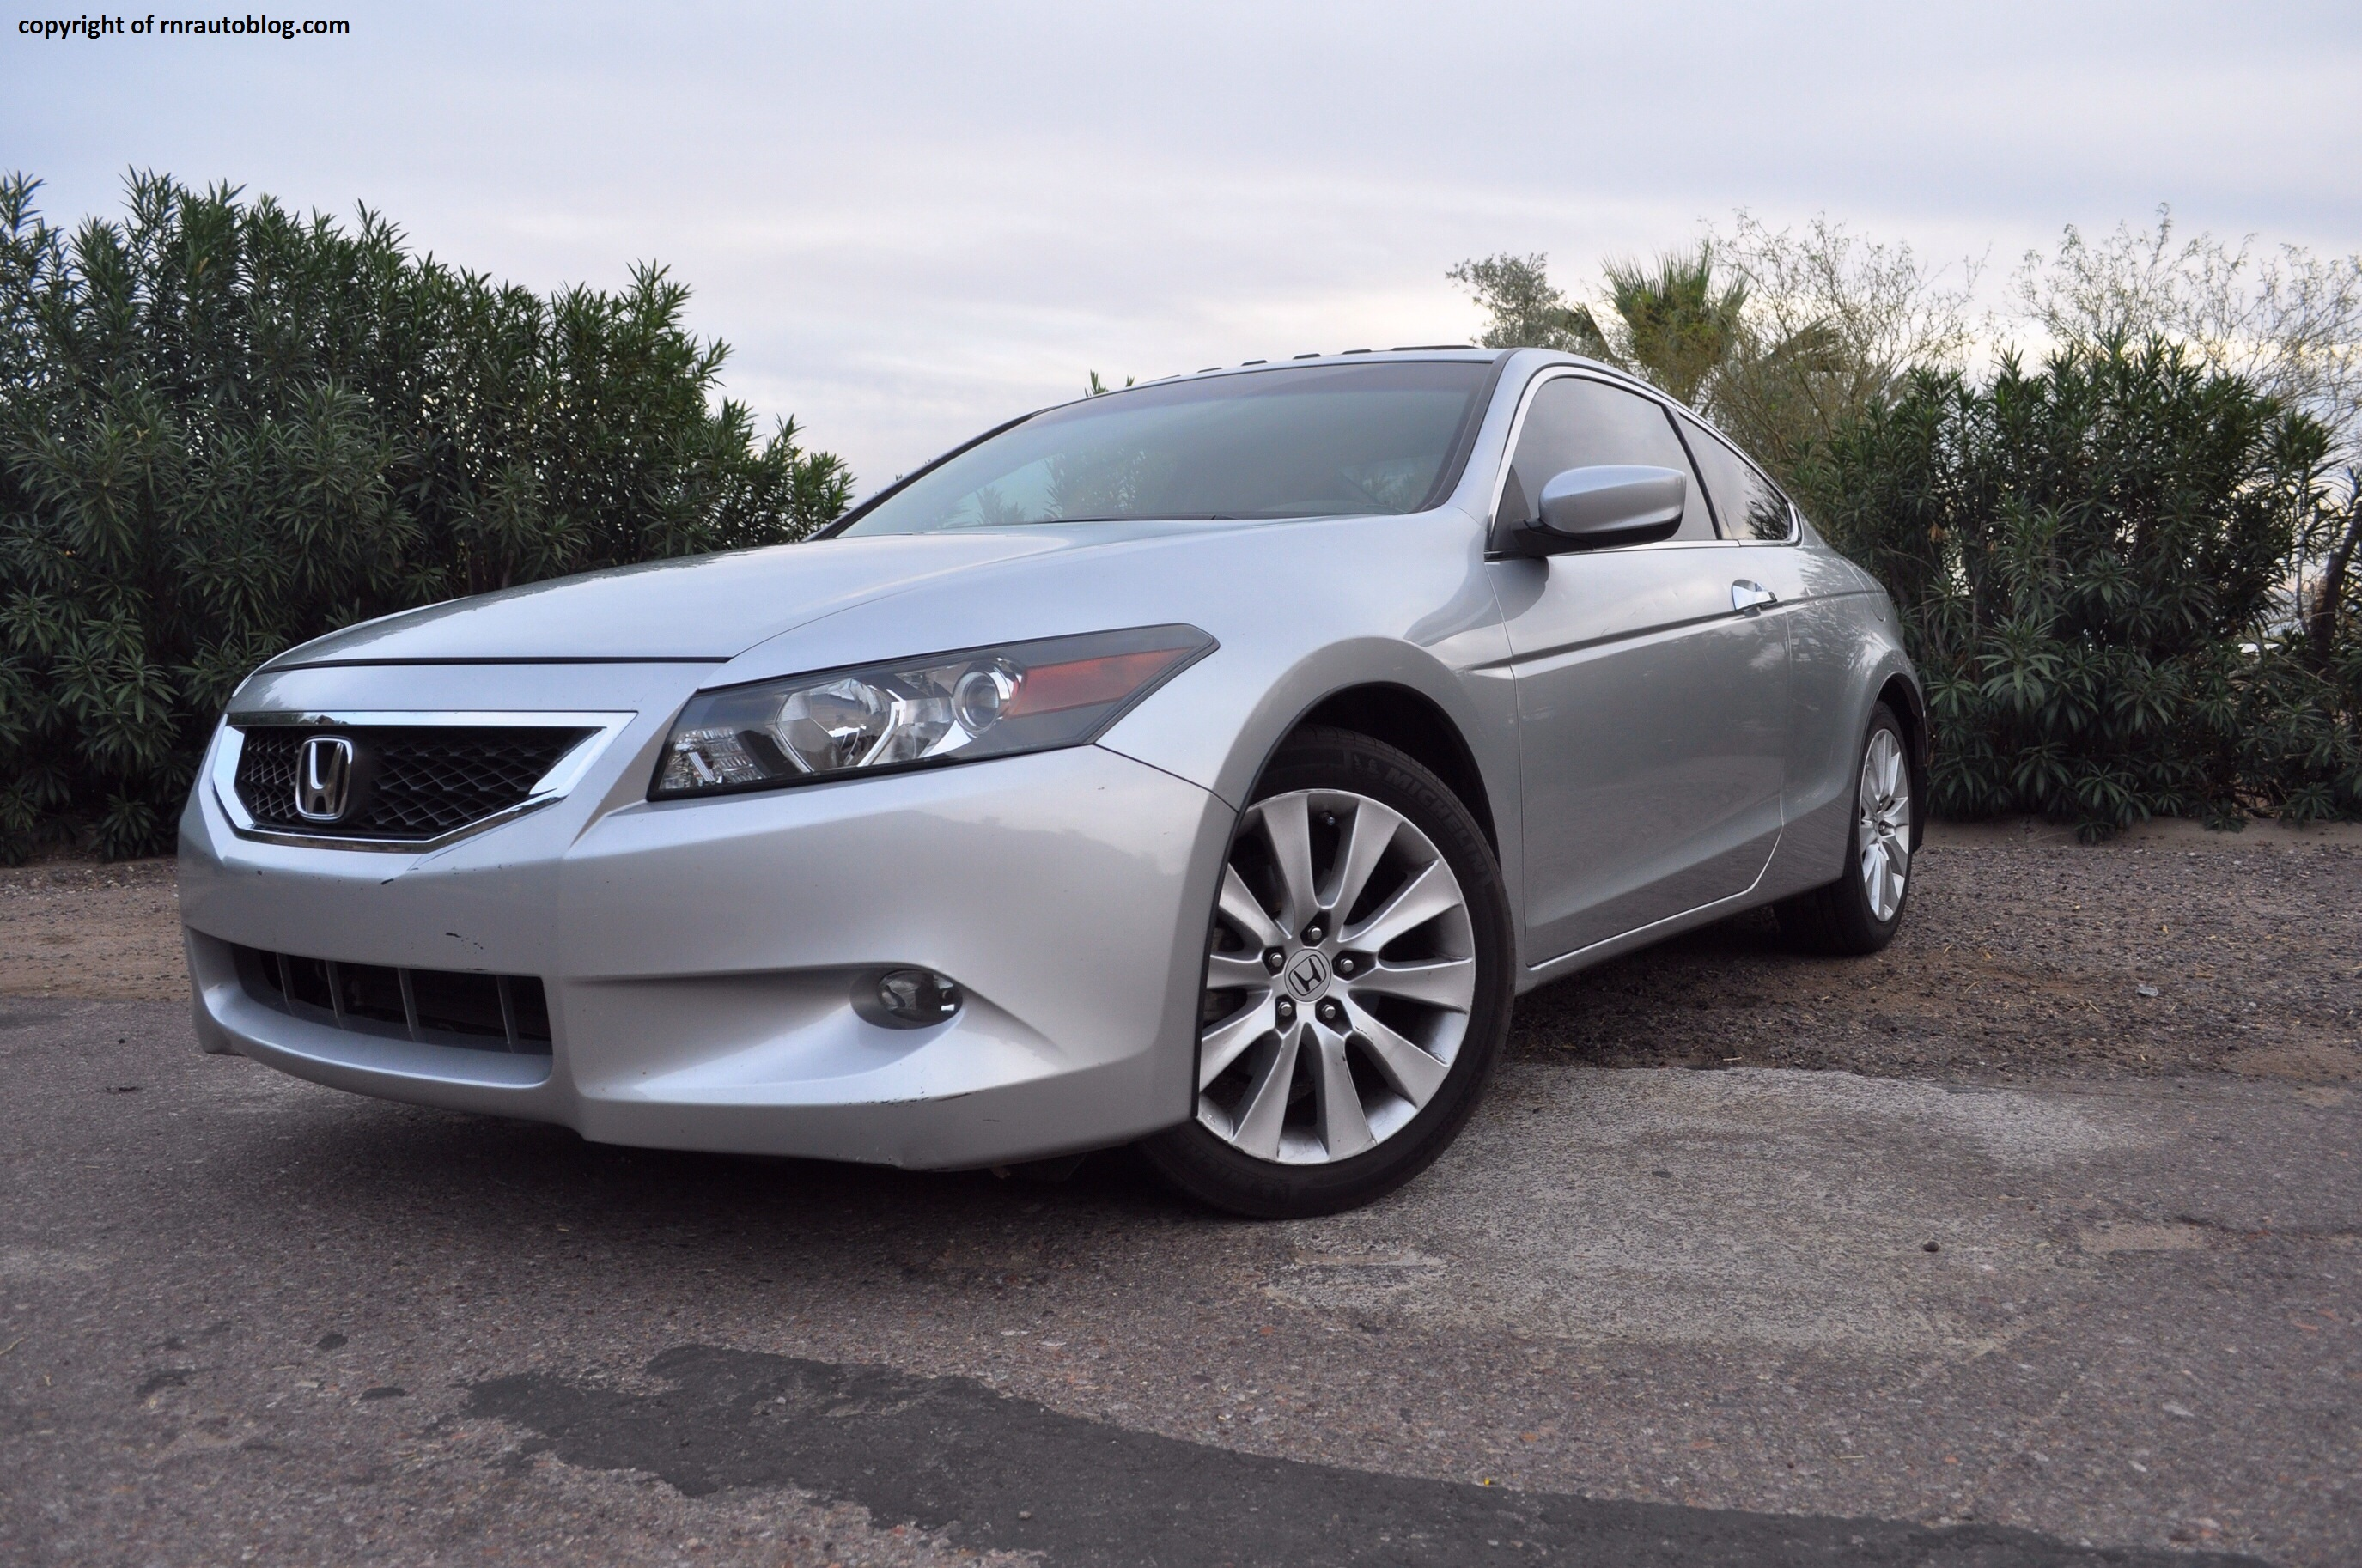 2008 honda accord exl v6 coupe rnr automotive blog for 03 honda accord coupe